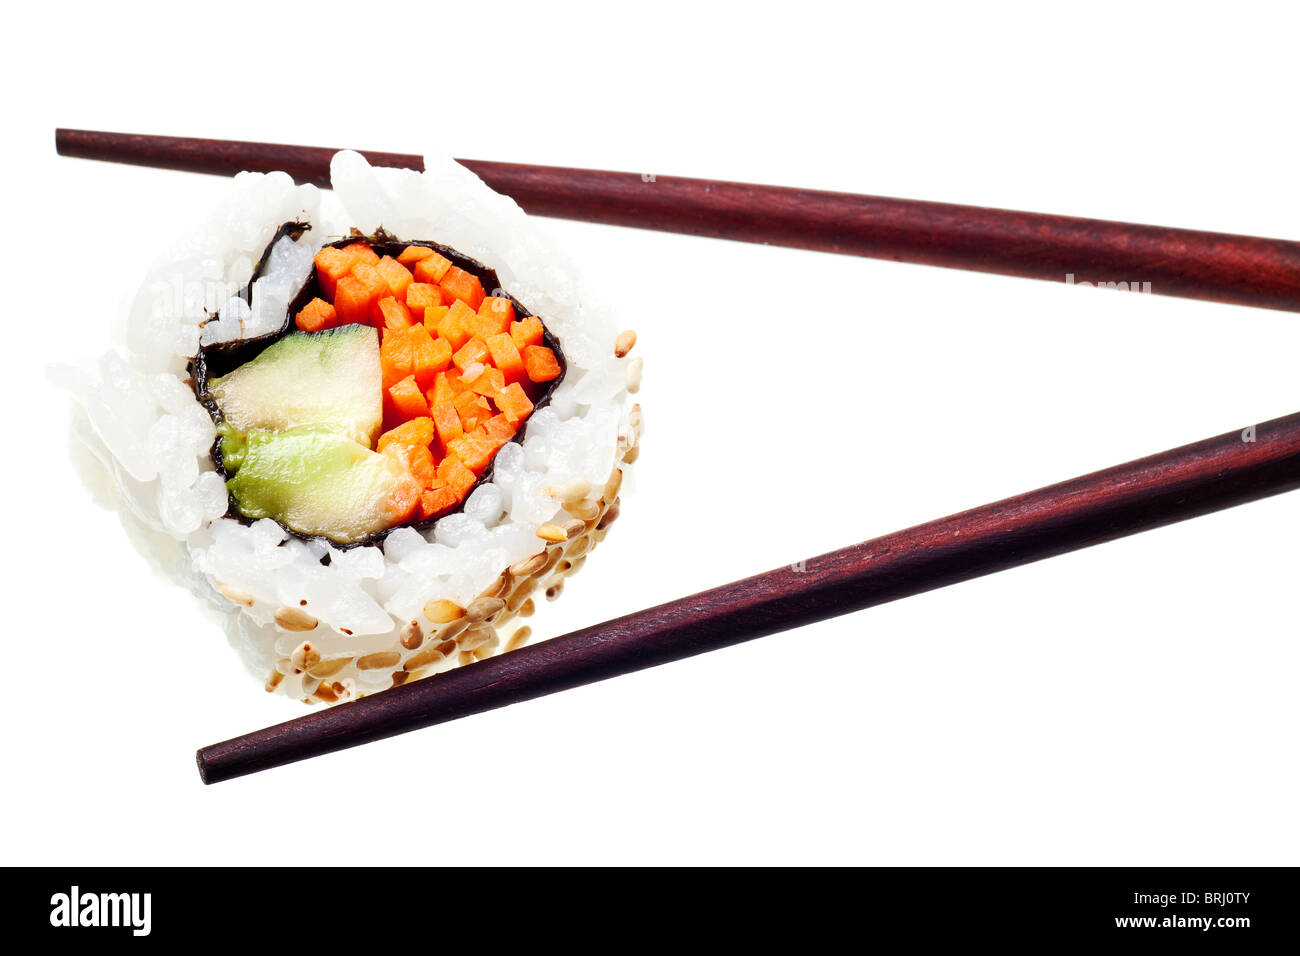 Vegetarian sushi California roll with rice and seaweed isolated on white background - Stock Image